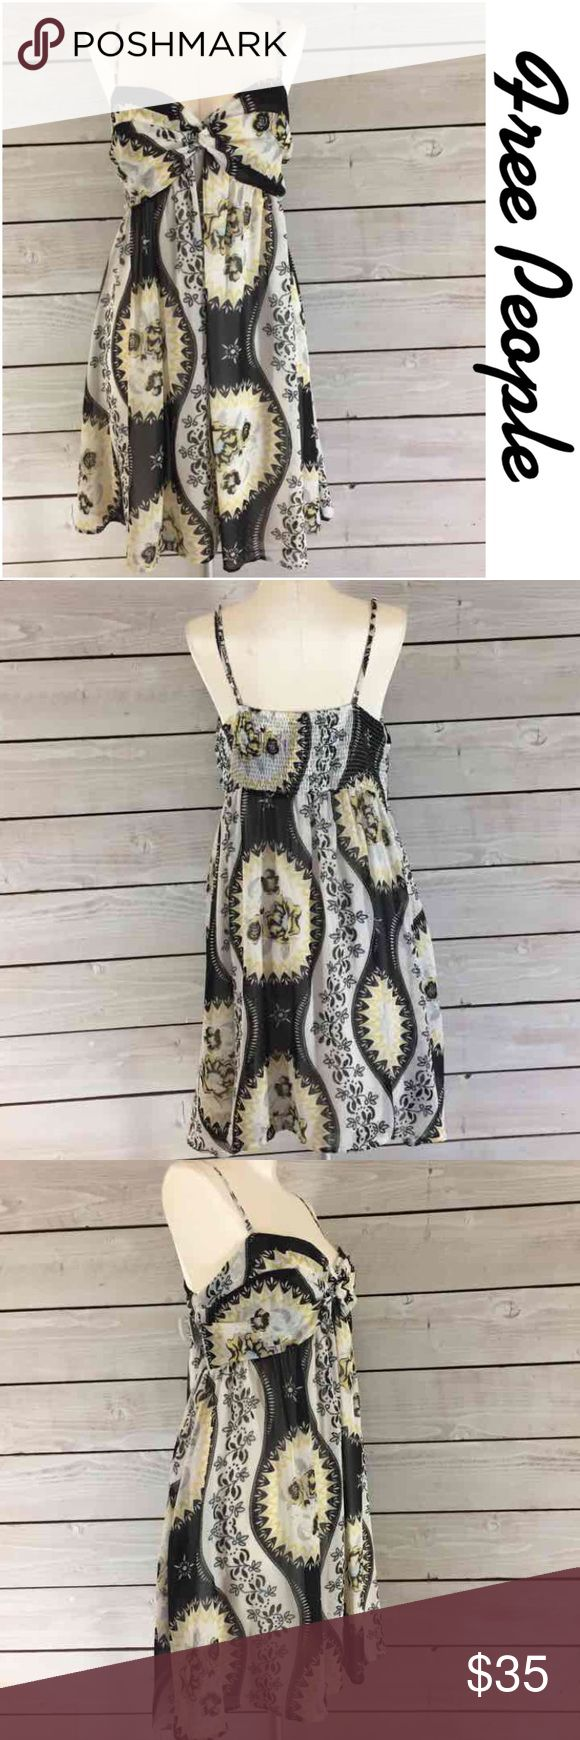 """Free People Print Dress.  Perfect for Summer. Free People Print Dress.  Perfect for Summer.  Loose fit from under bust.  Comfy. Flat lay measurements.  Between under arms 16.5"""". length 33.5"""". Summer Perfect. Free People Dresses"""